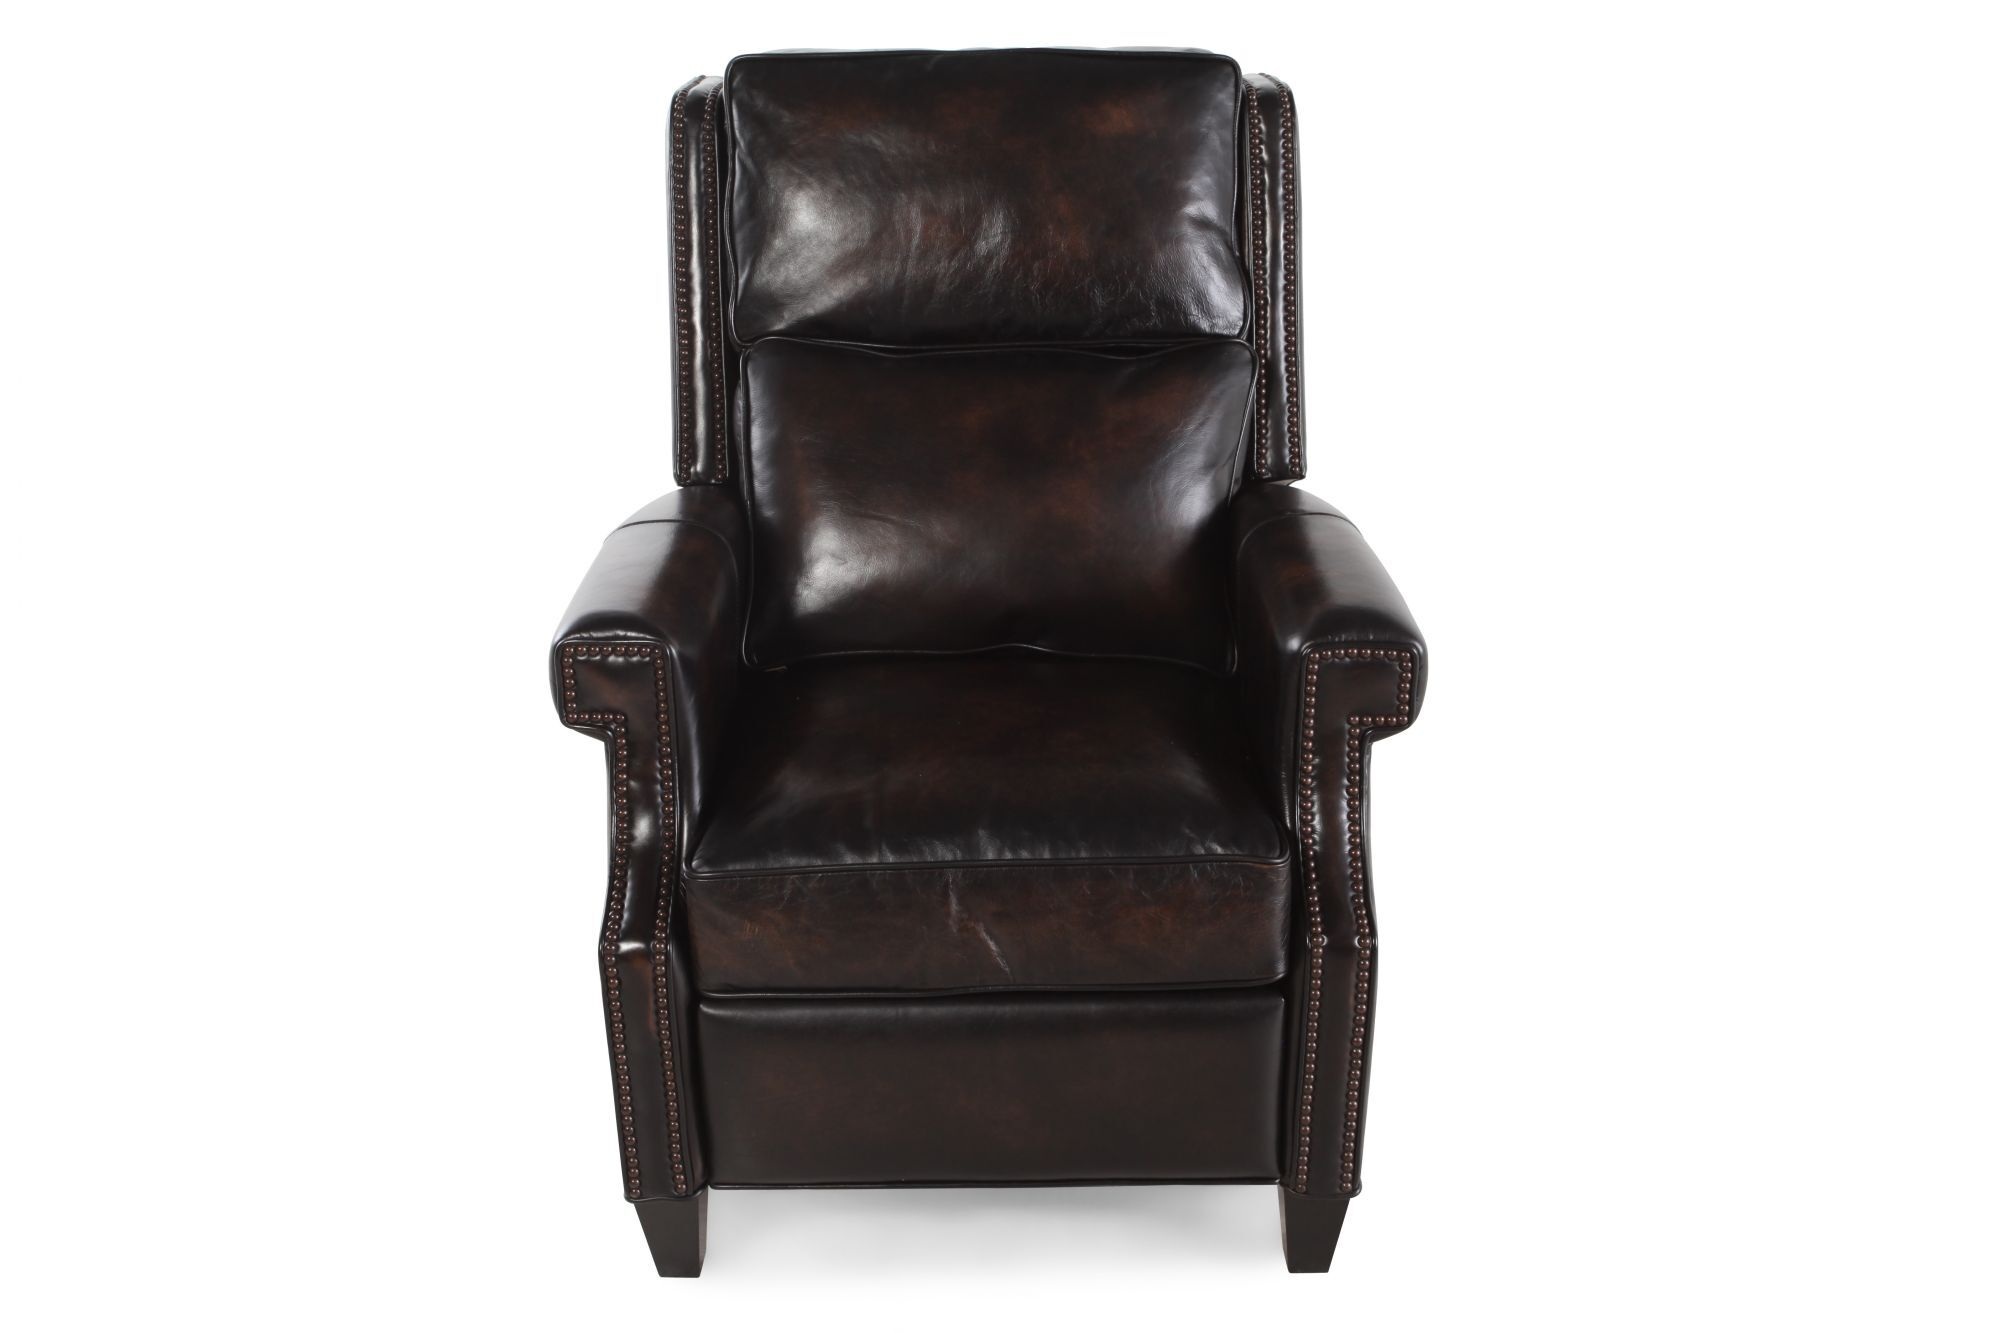 Bernhardt Barrett Brown Leather Recliner  sc 1 st  Mathis Brothers & Bernhardt Barrett Brown Leather Recliner | Mathis Brothers Furniture islam-shia.org